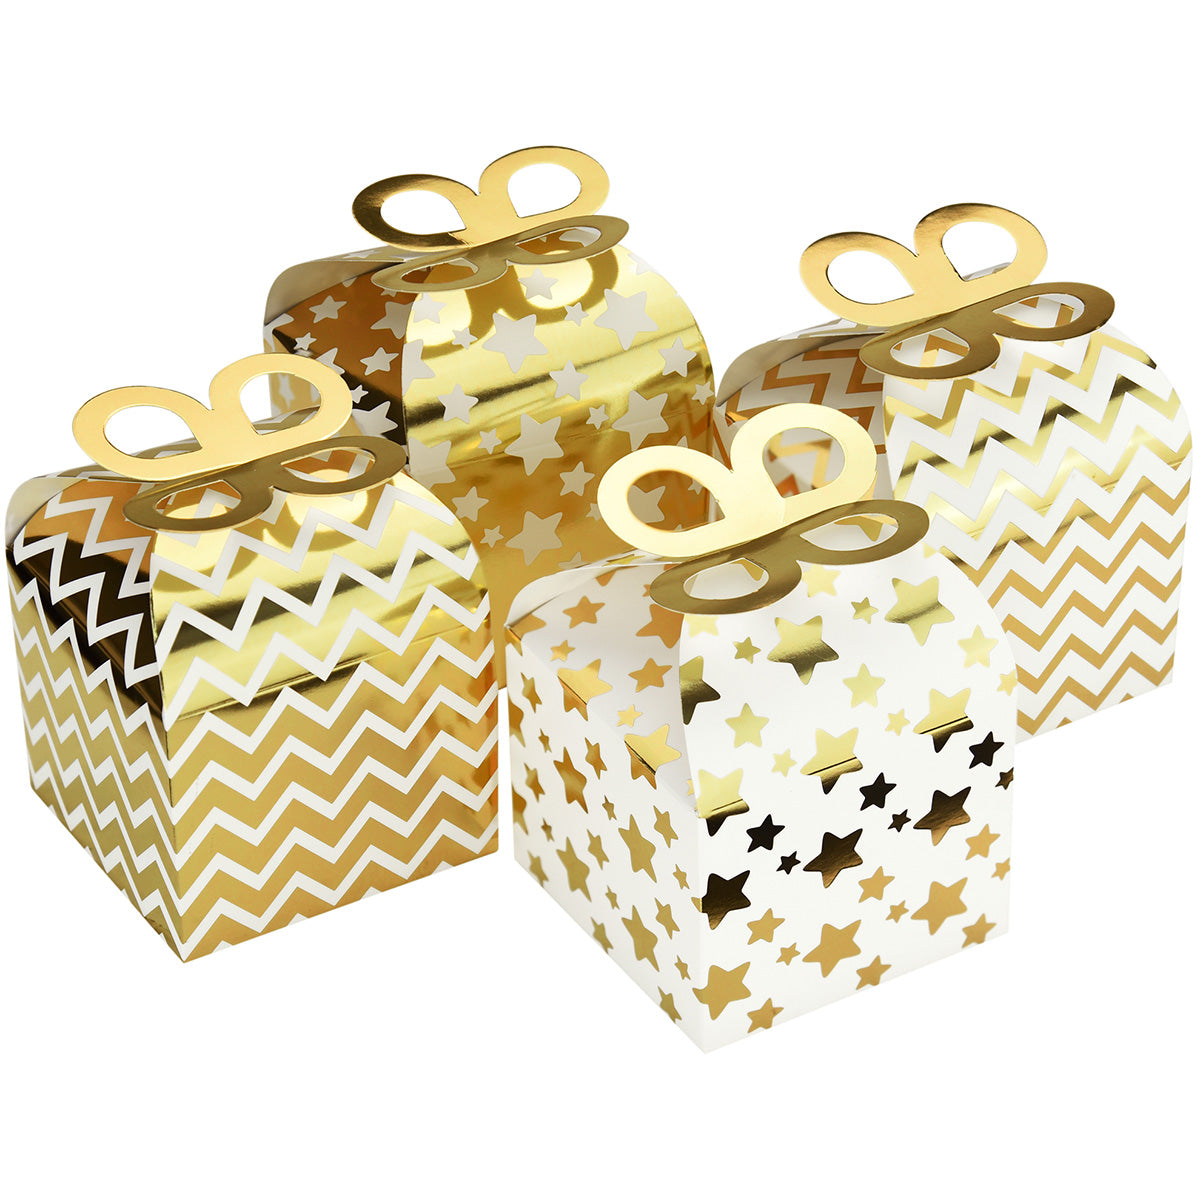 Gold & White Stars /Zigzag Patterns Gift Boxes 12 Pieces